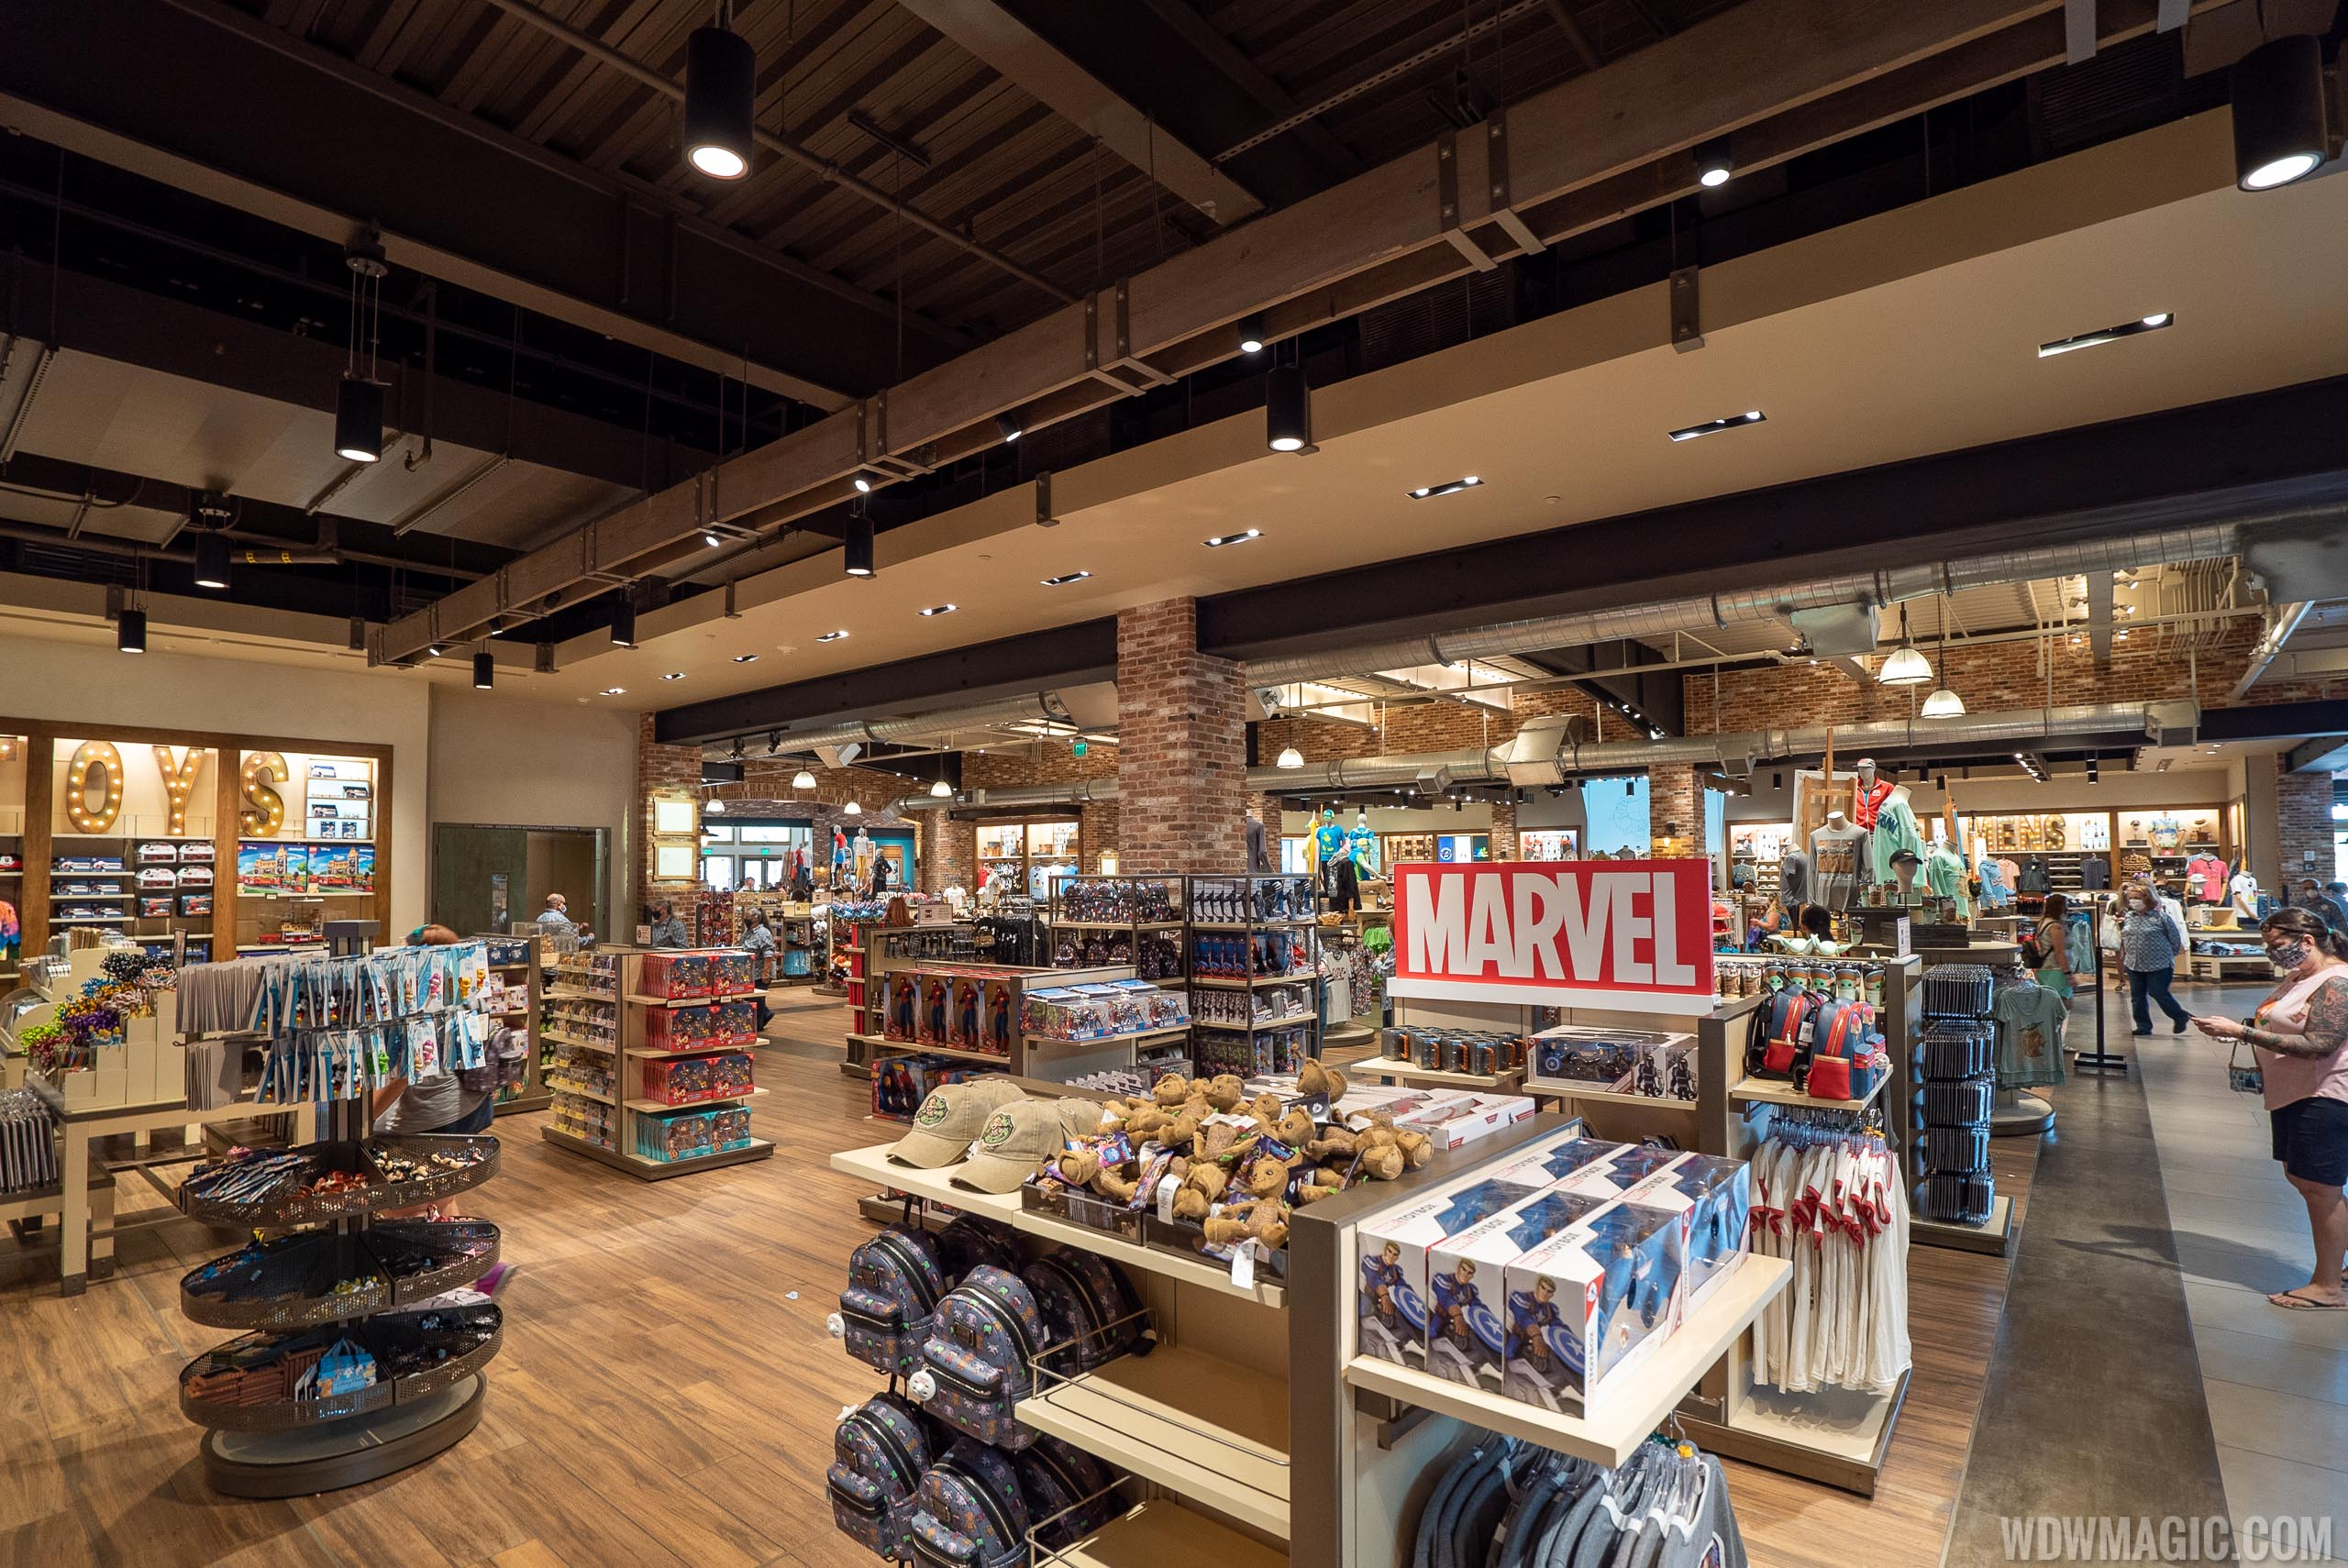 Merchandise from World of Disney can often be found discounted at the outlet locations